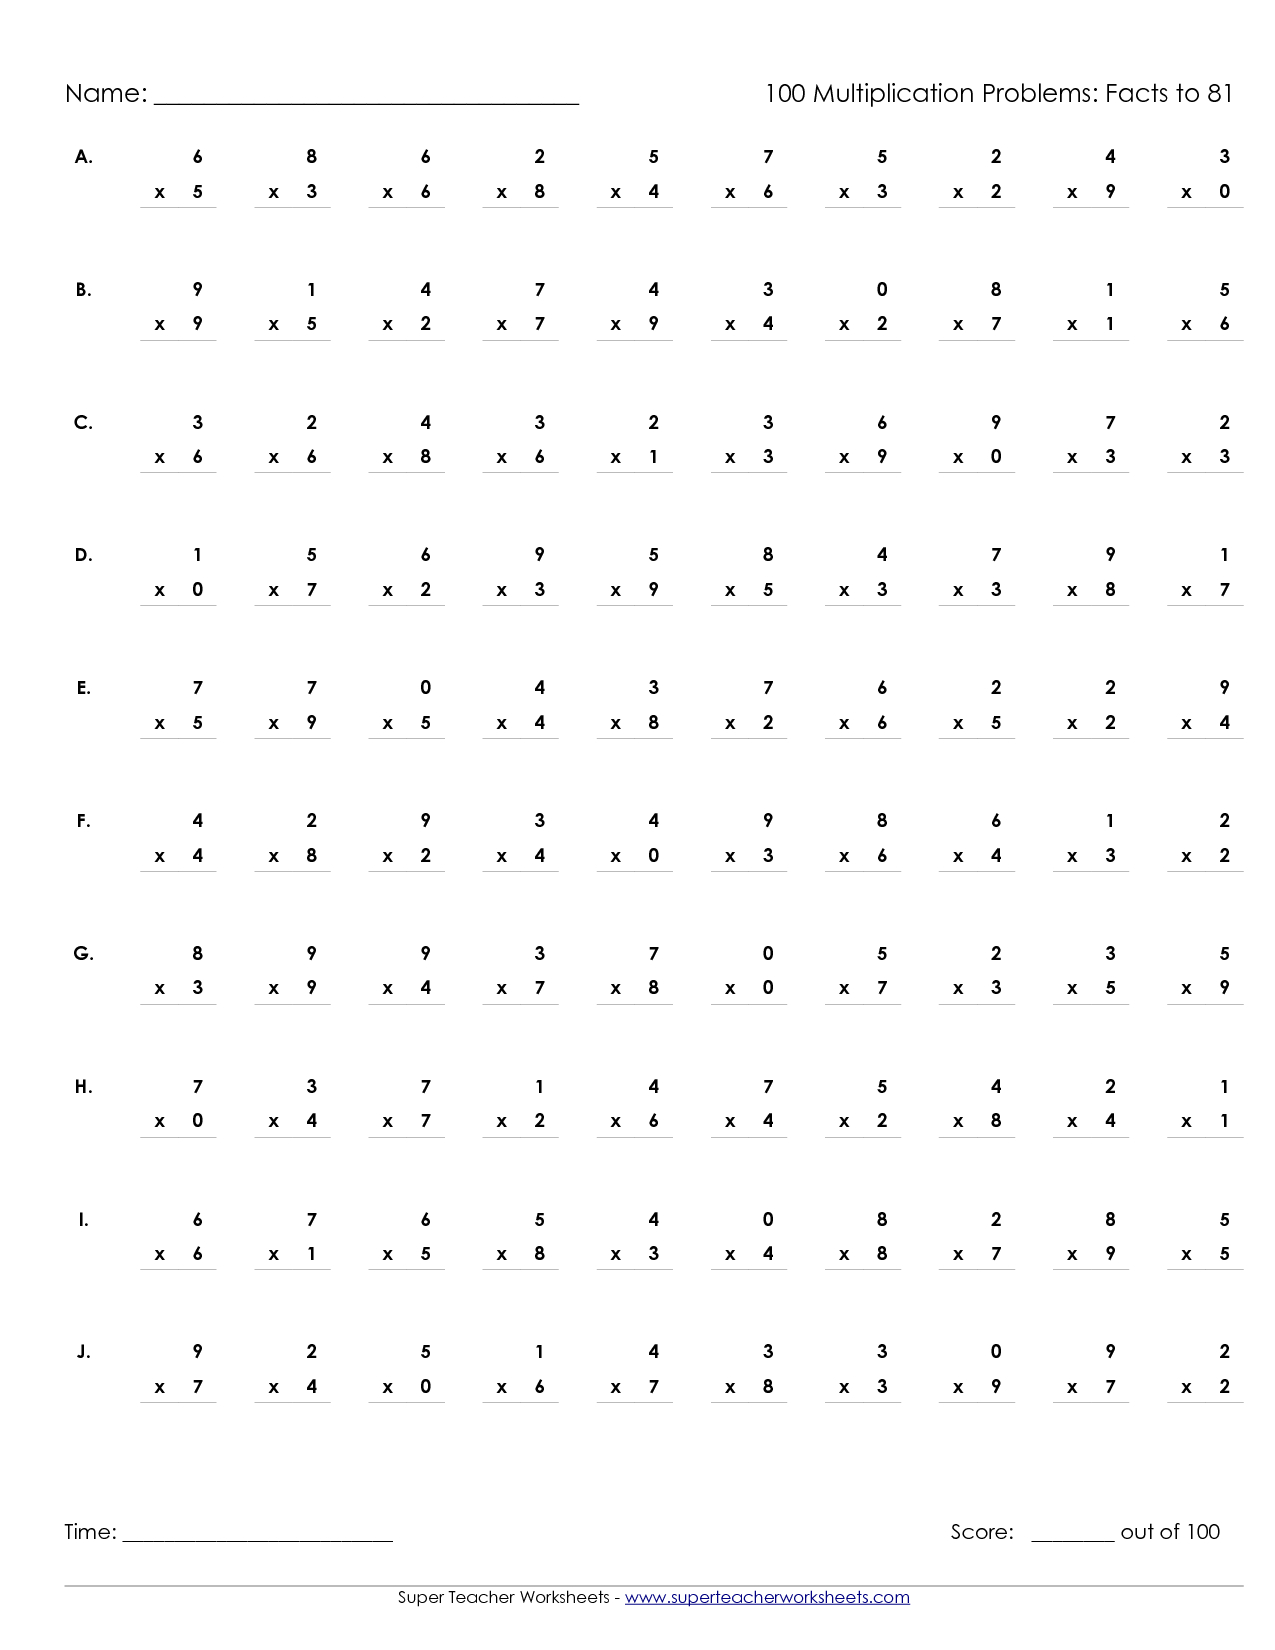 Printable Multiplication Sheets 100 Problems